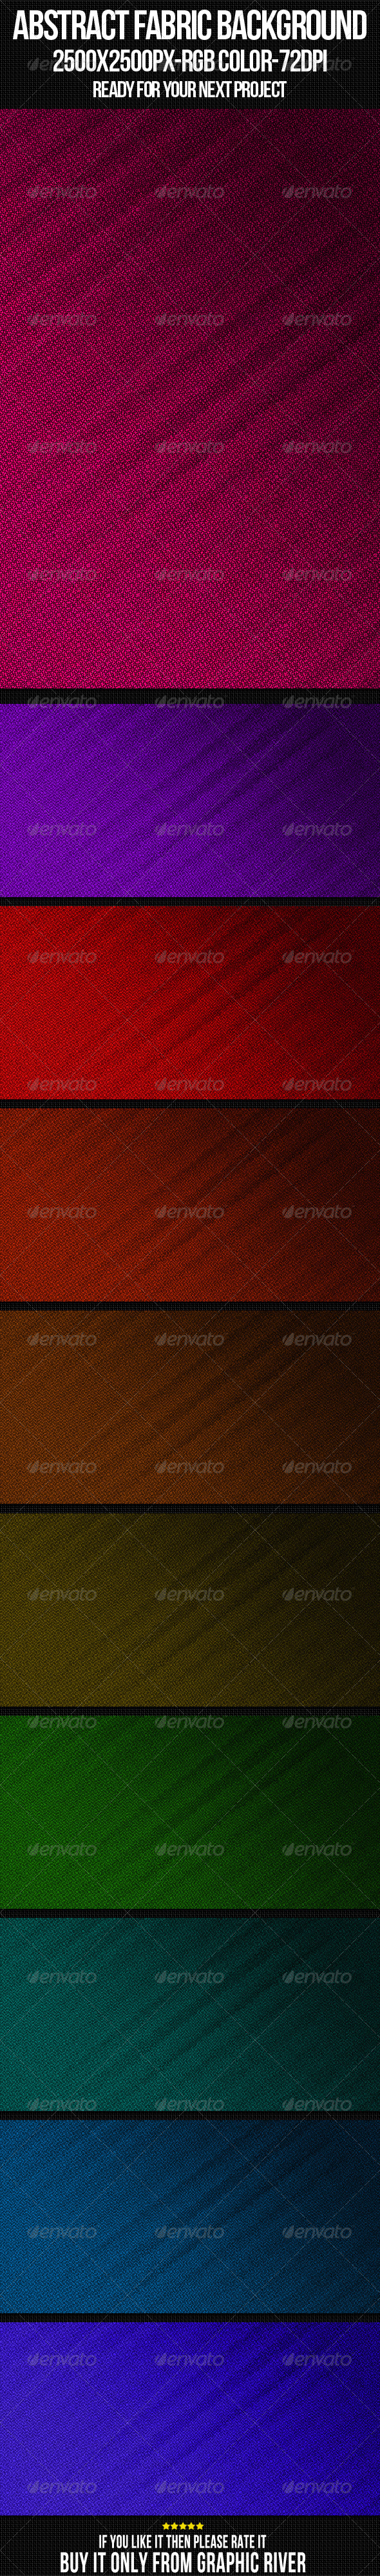 Abstract Fabric Background Set 12 - Miscellaneous Backgrounds